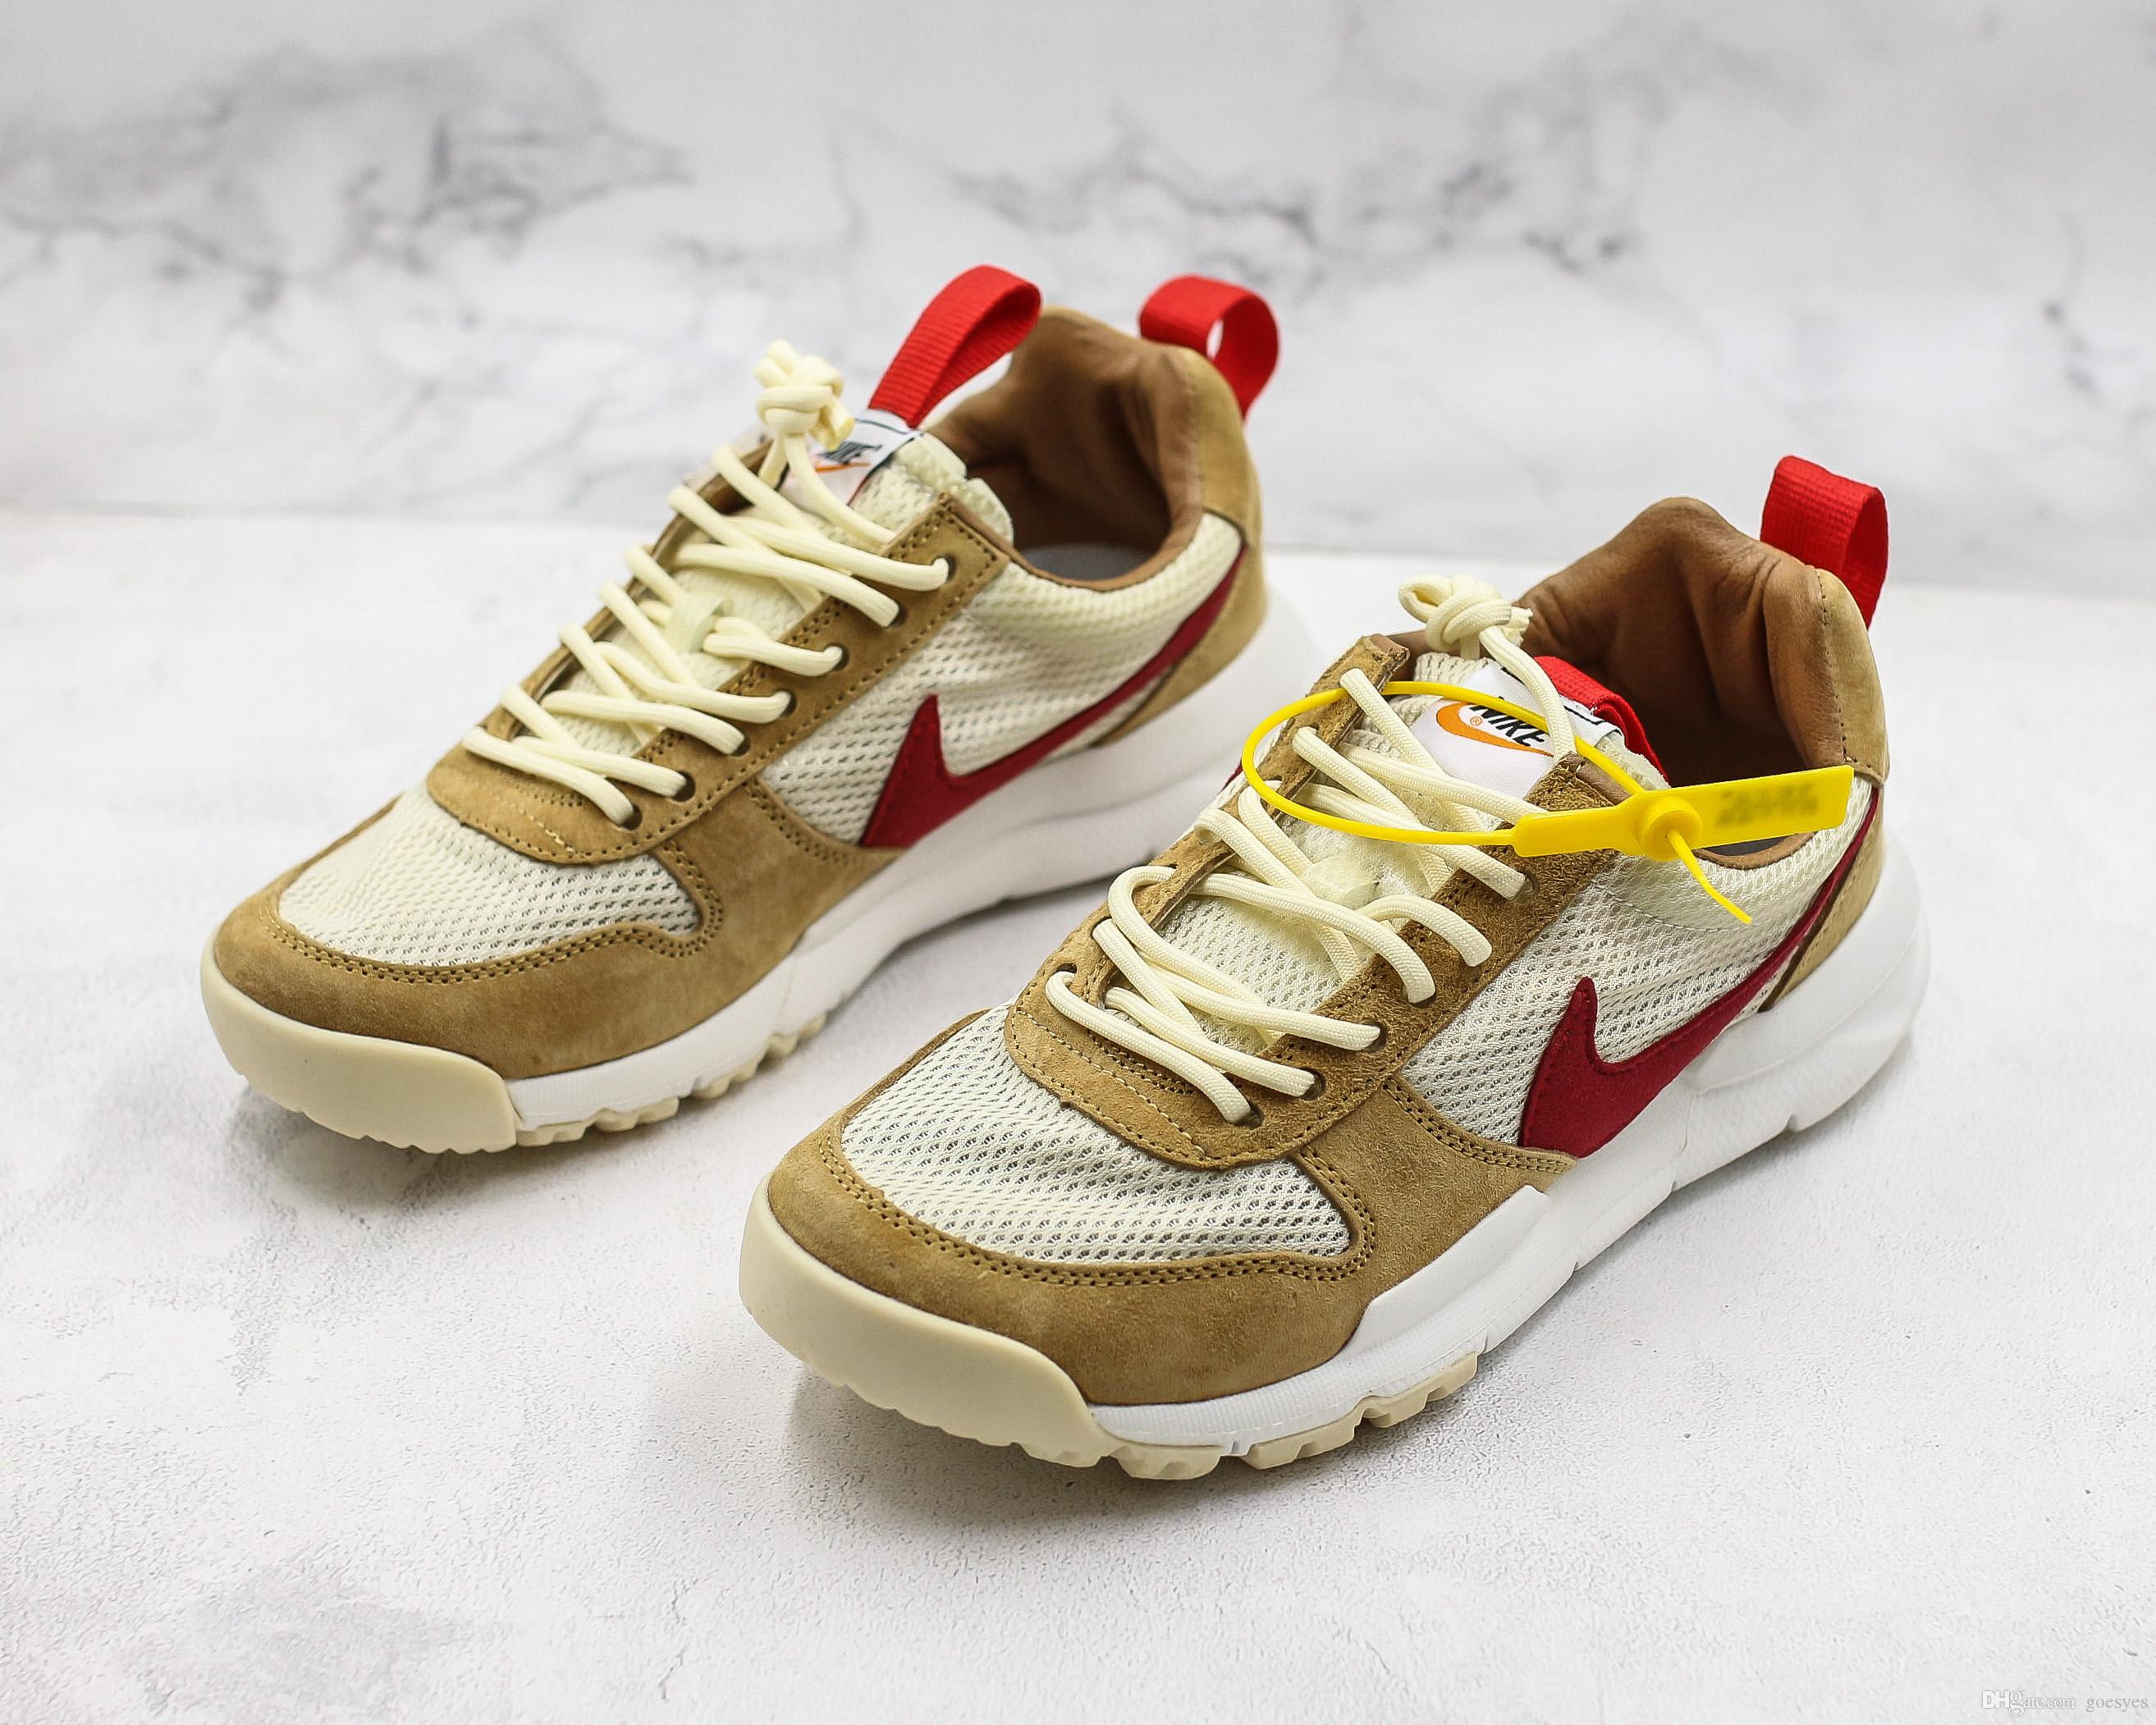 super popular f243f c2b91 2019 Nuovo rilascio Tom Sachs Craft Mars Yard TS NASA 2.0 Scarpe AA2261-100  Natural / Sport Red-Maple Scarpe causali unisex Taglia 5-11